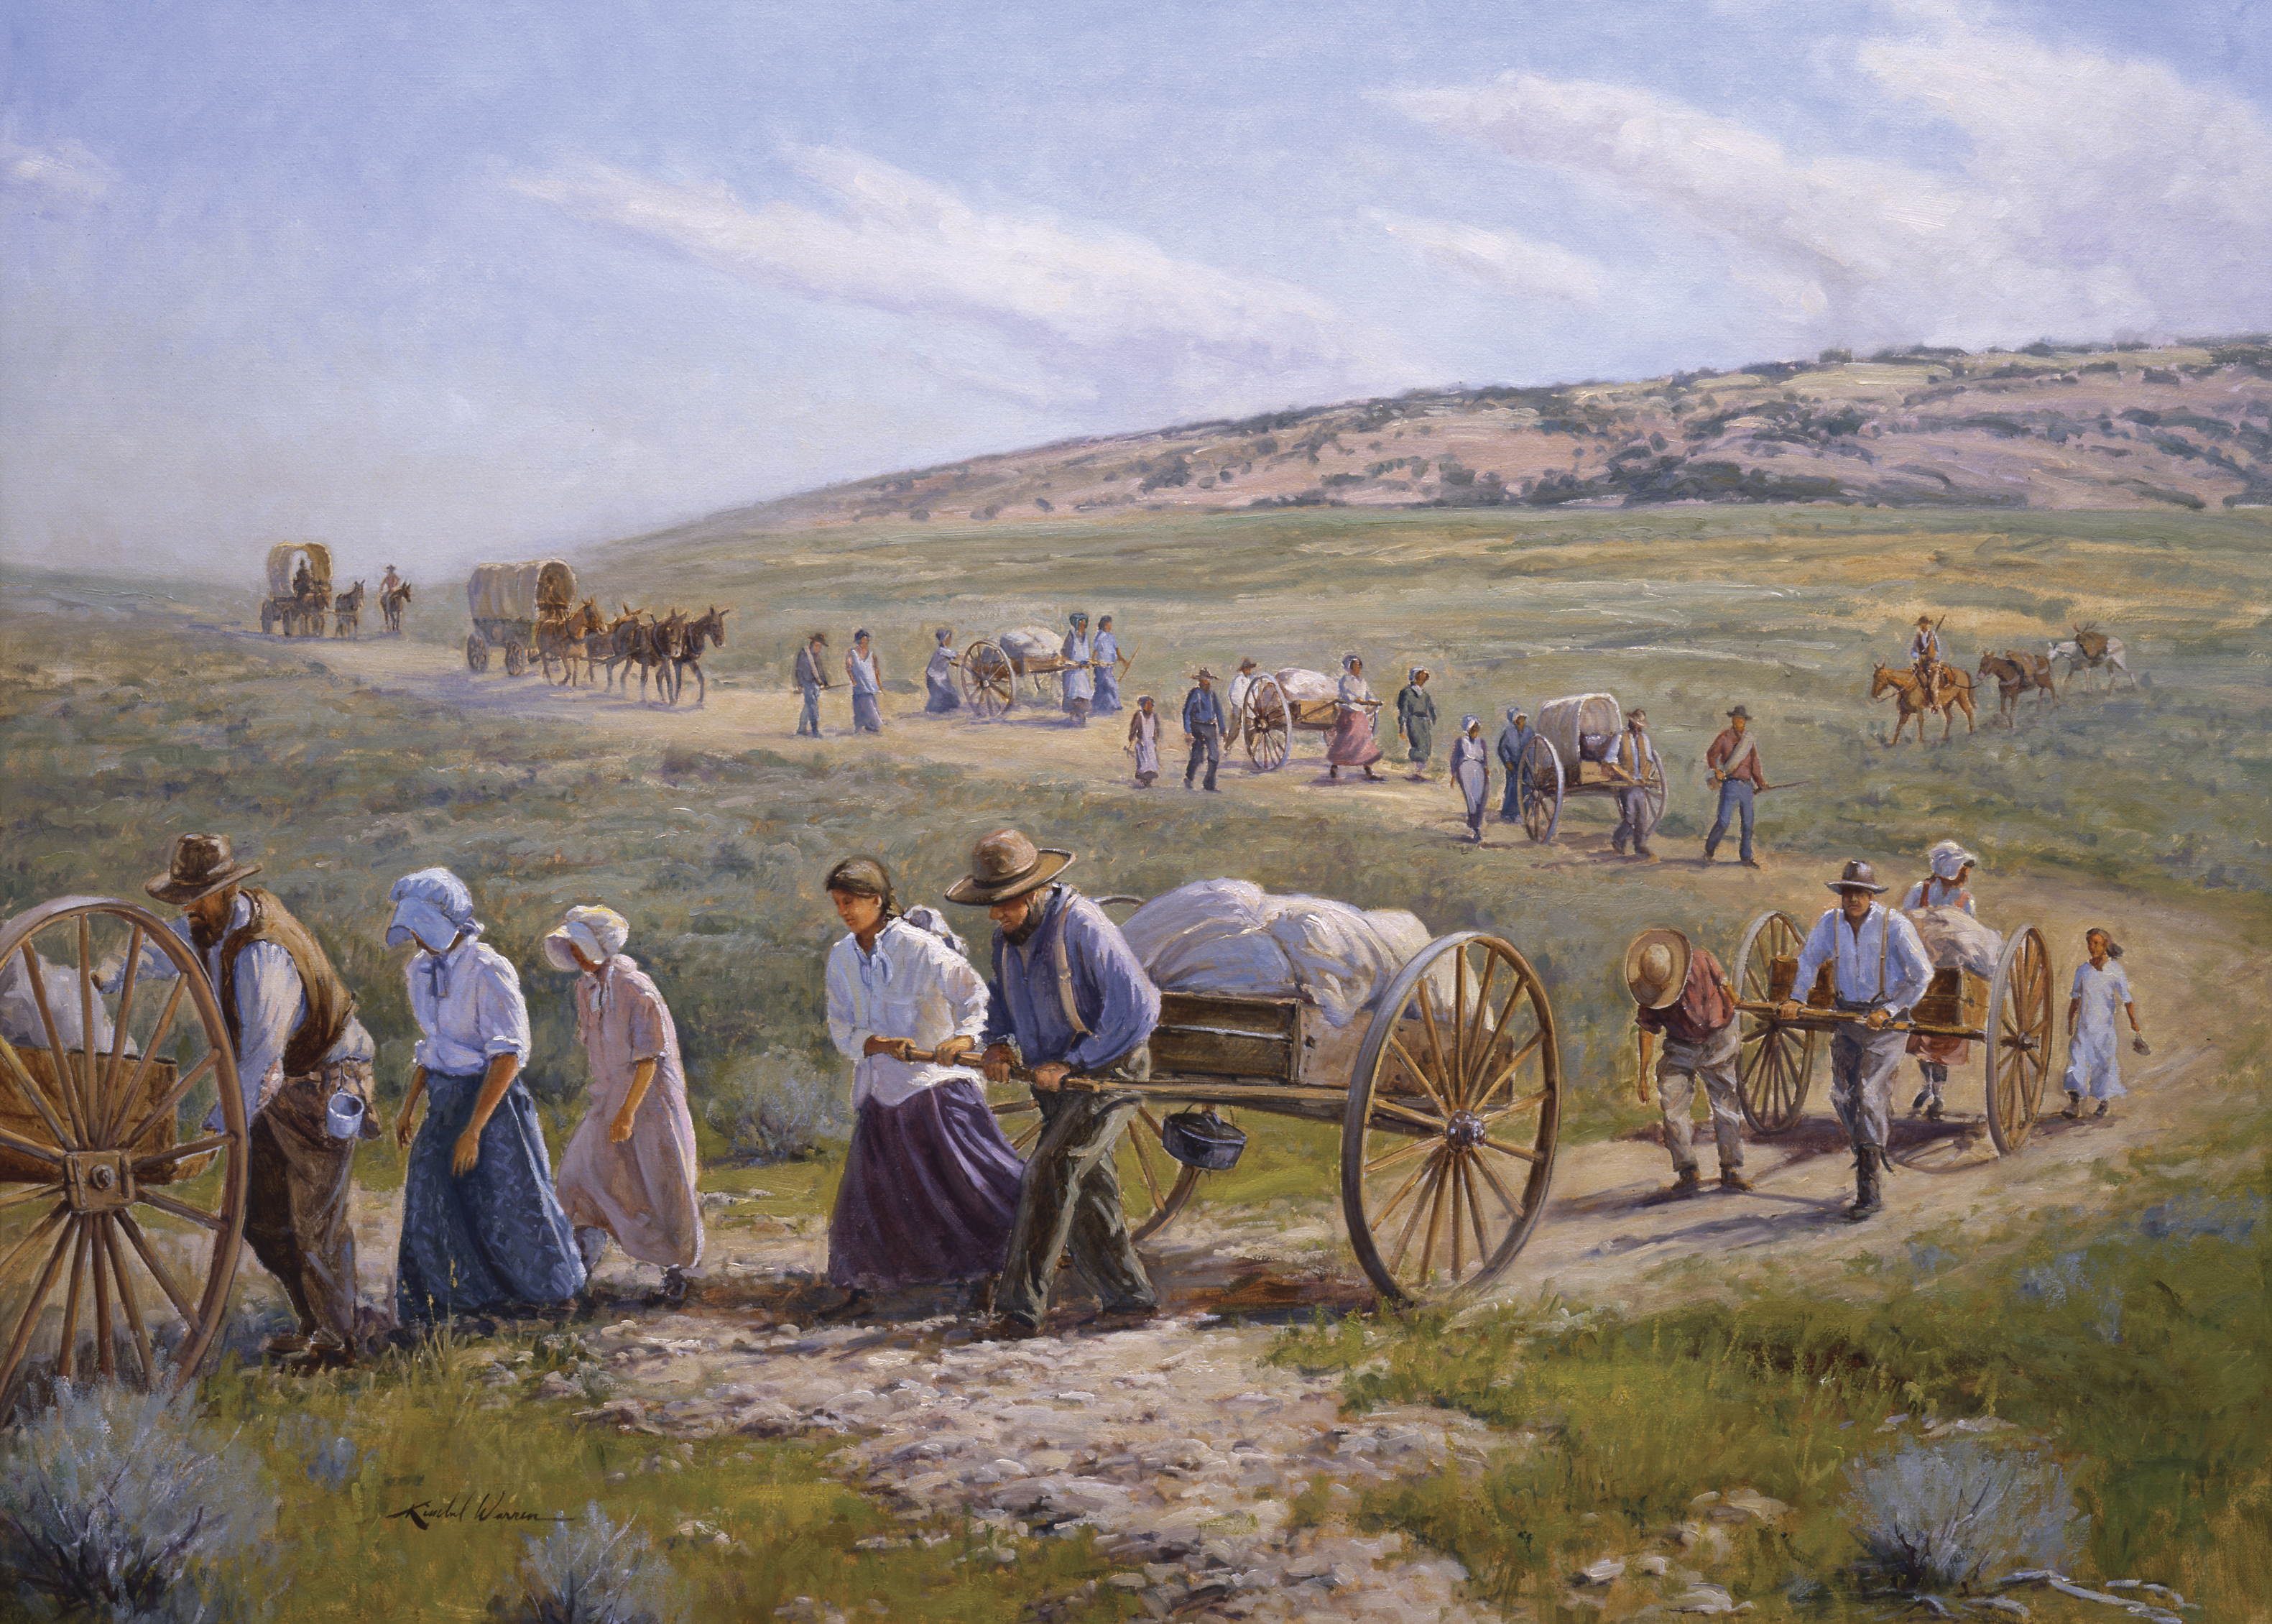 Pushing, Pulling and Praying, Bound for Zion, by E. Kimball Warren